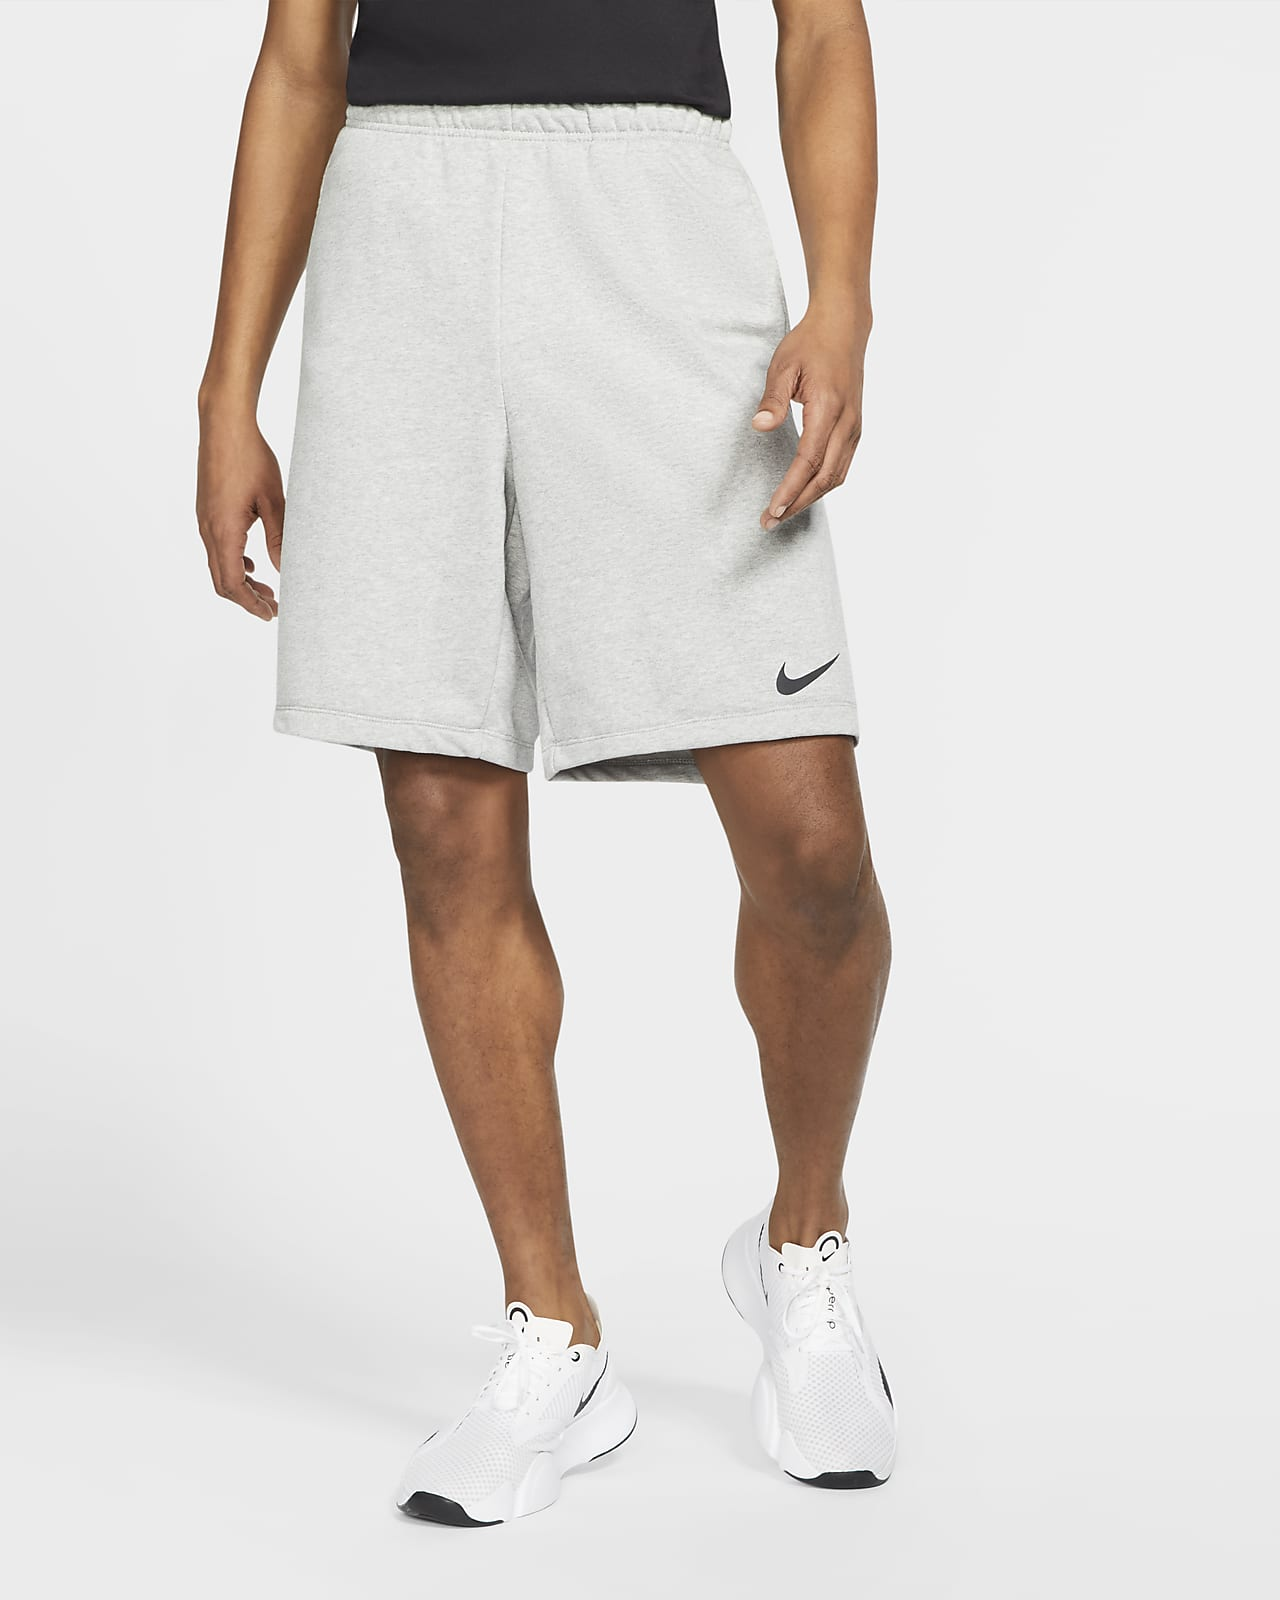 Short de training Nike Dri-FIT pour Homme